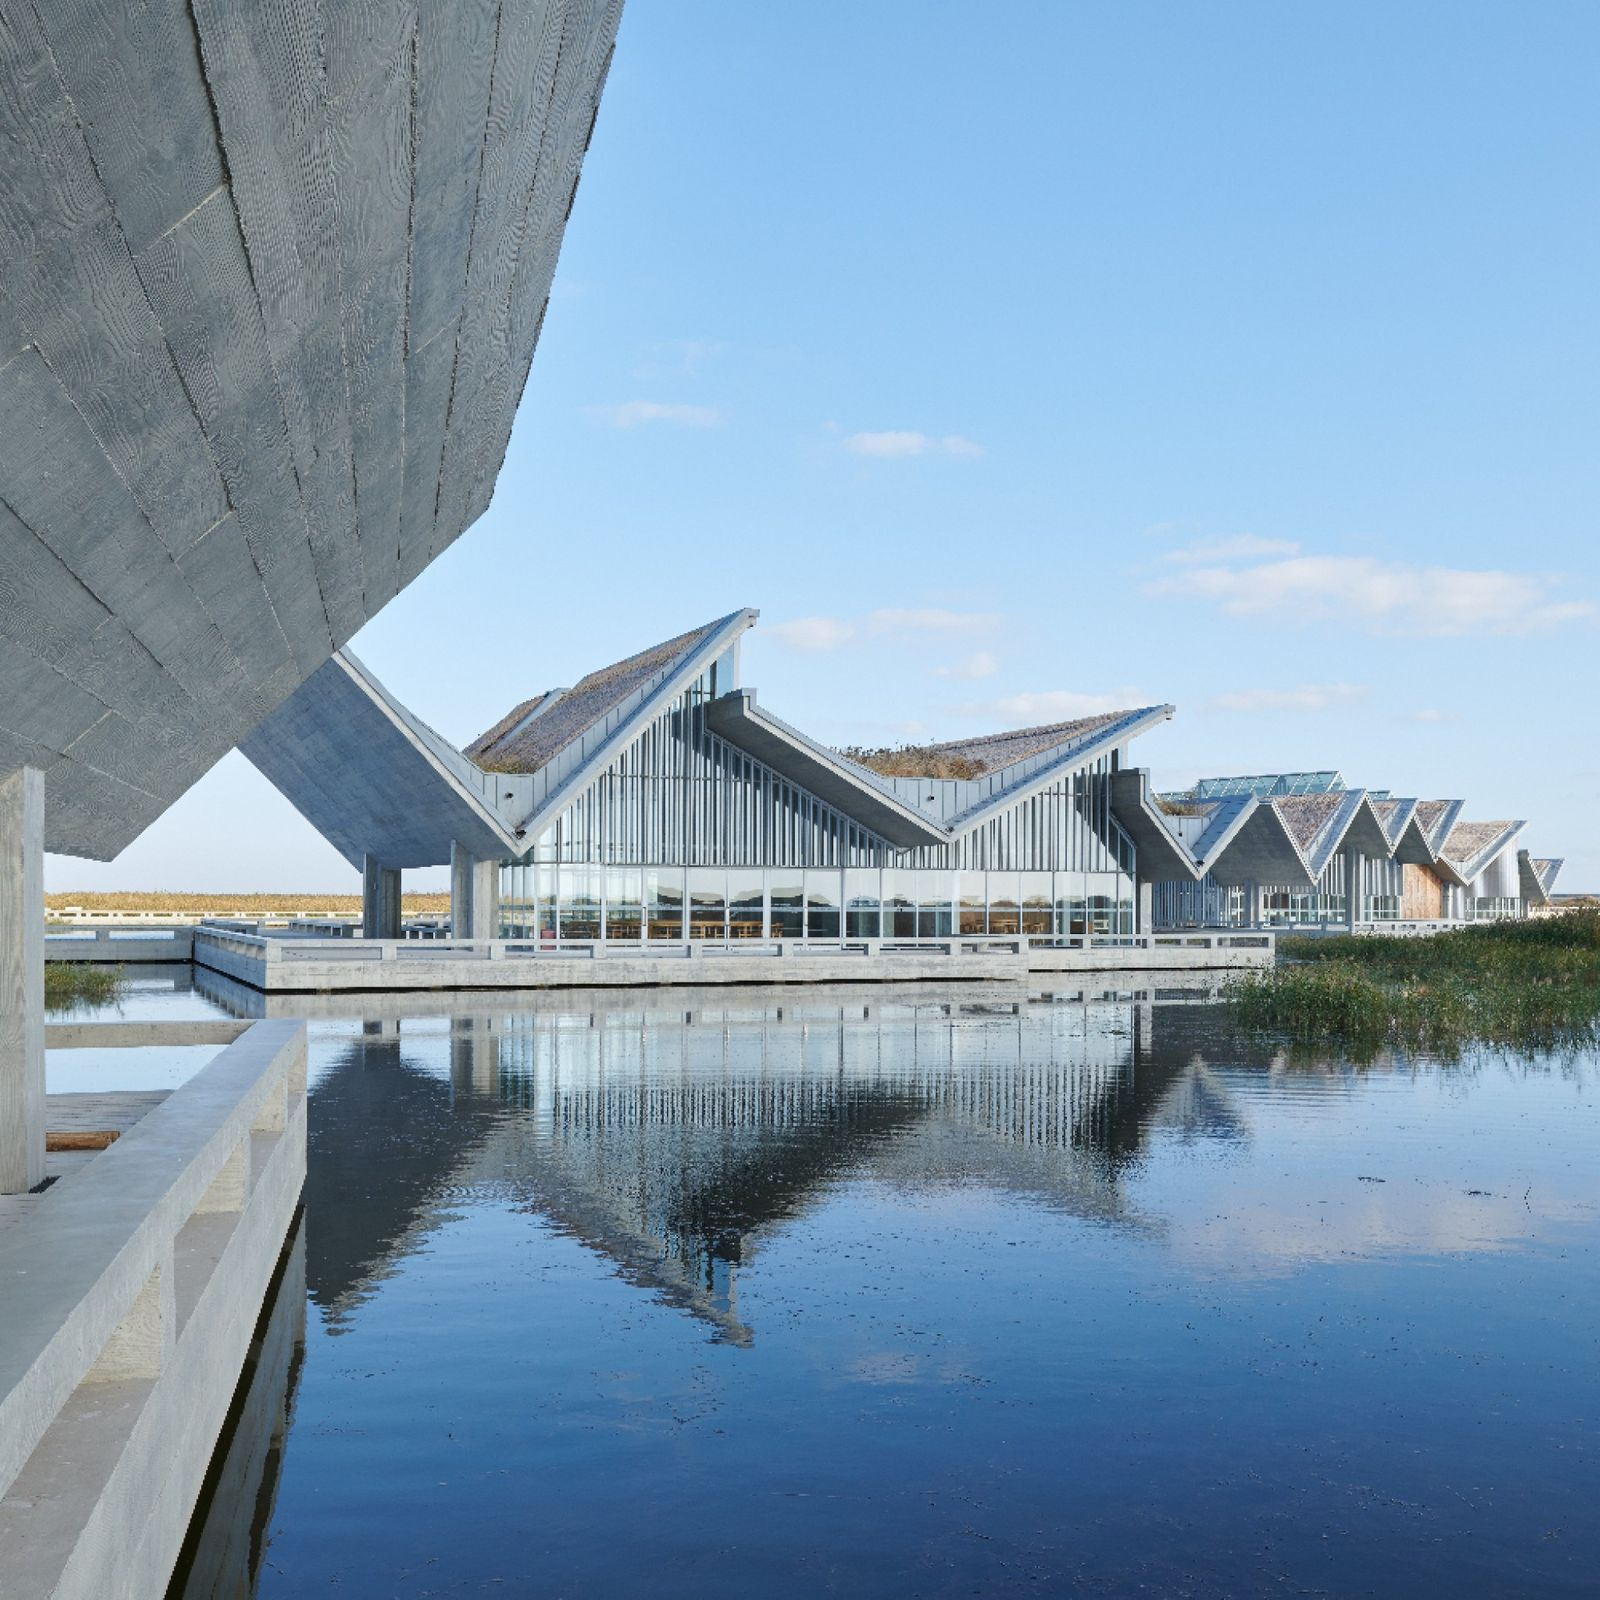 Wetland Research and Education Center by Atelier Z+